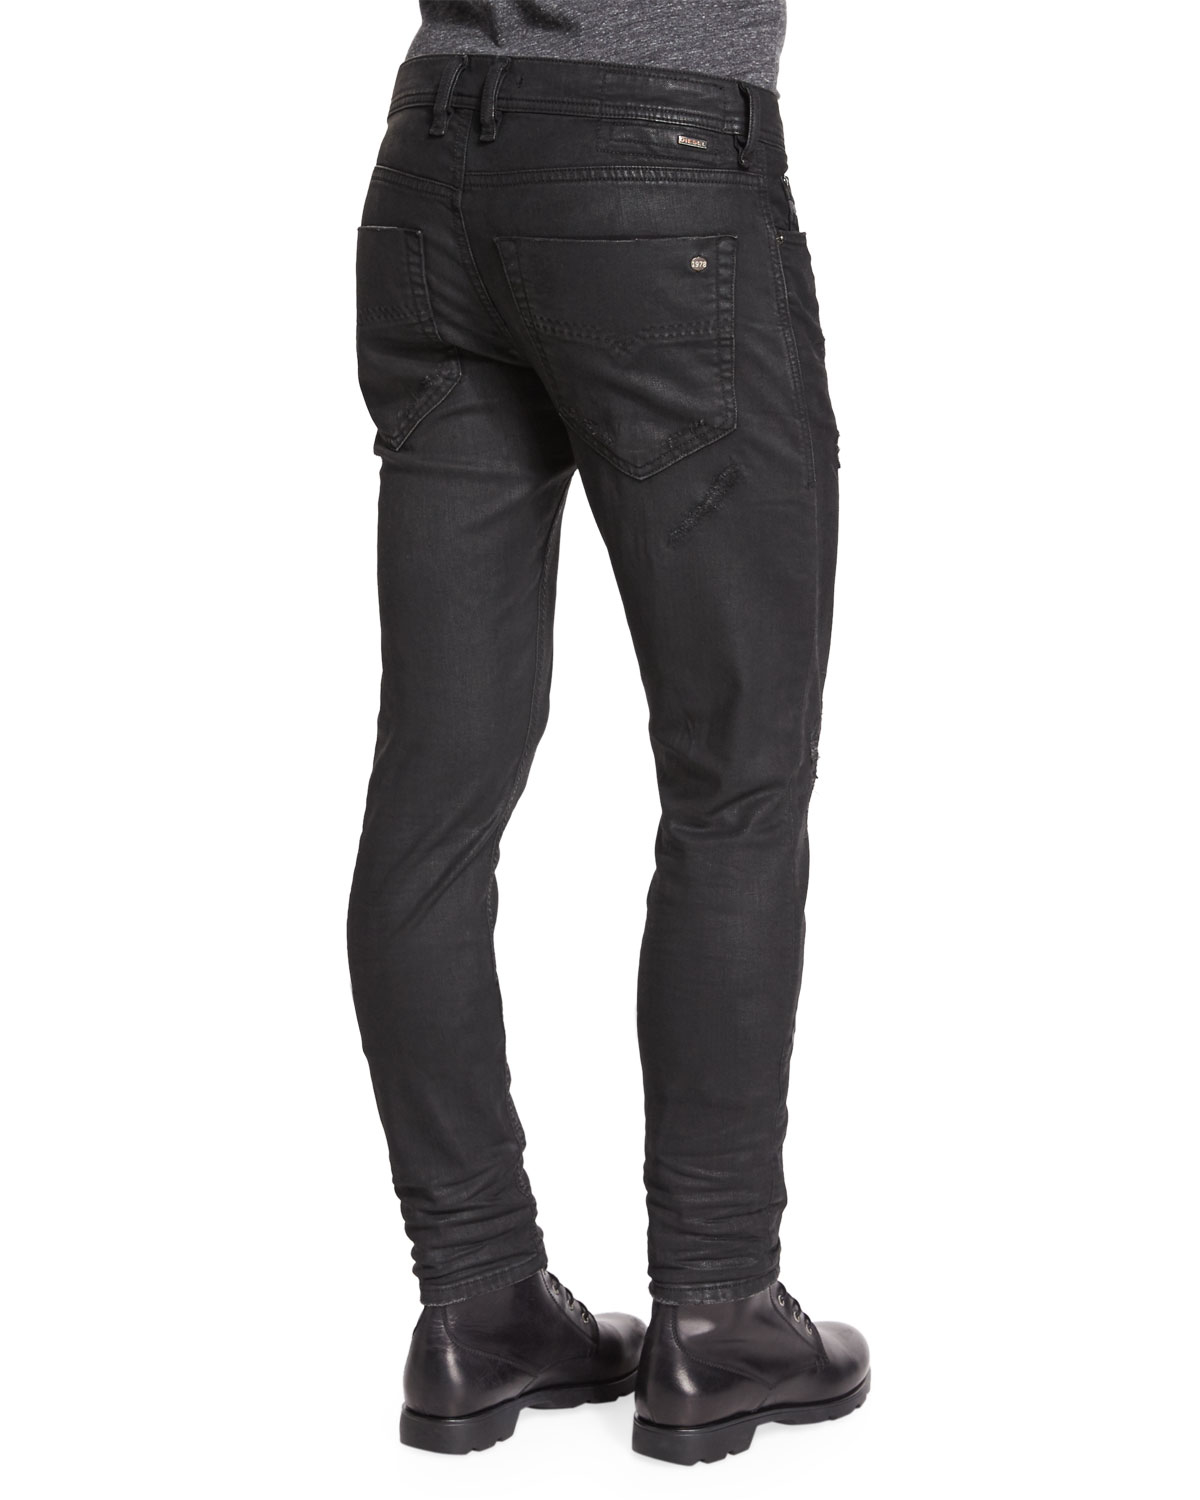 0f298be9 DIESEL Tepphar Distressed Coated Jeans in Black for Men - Lyst